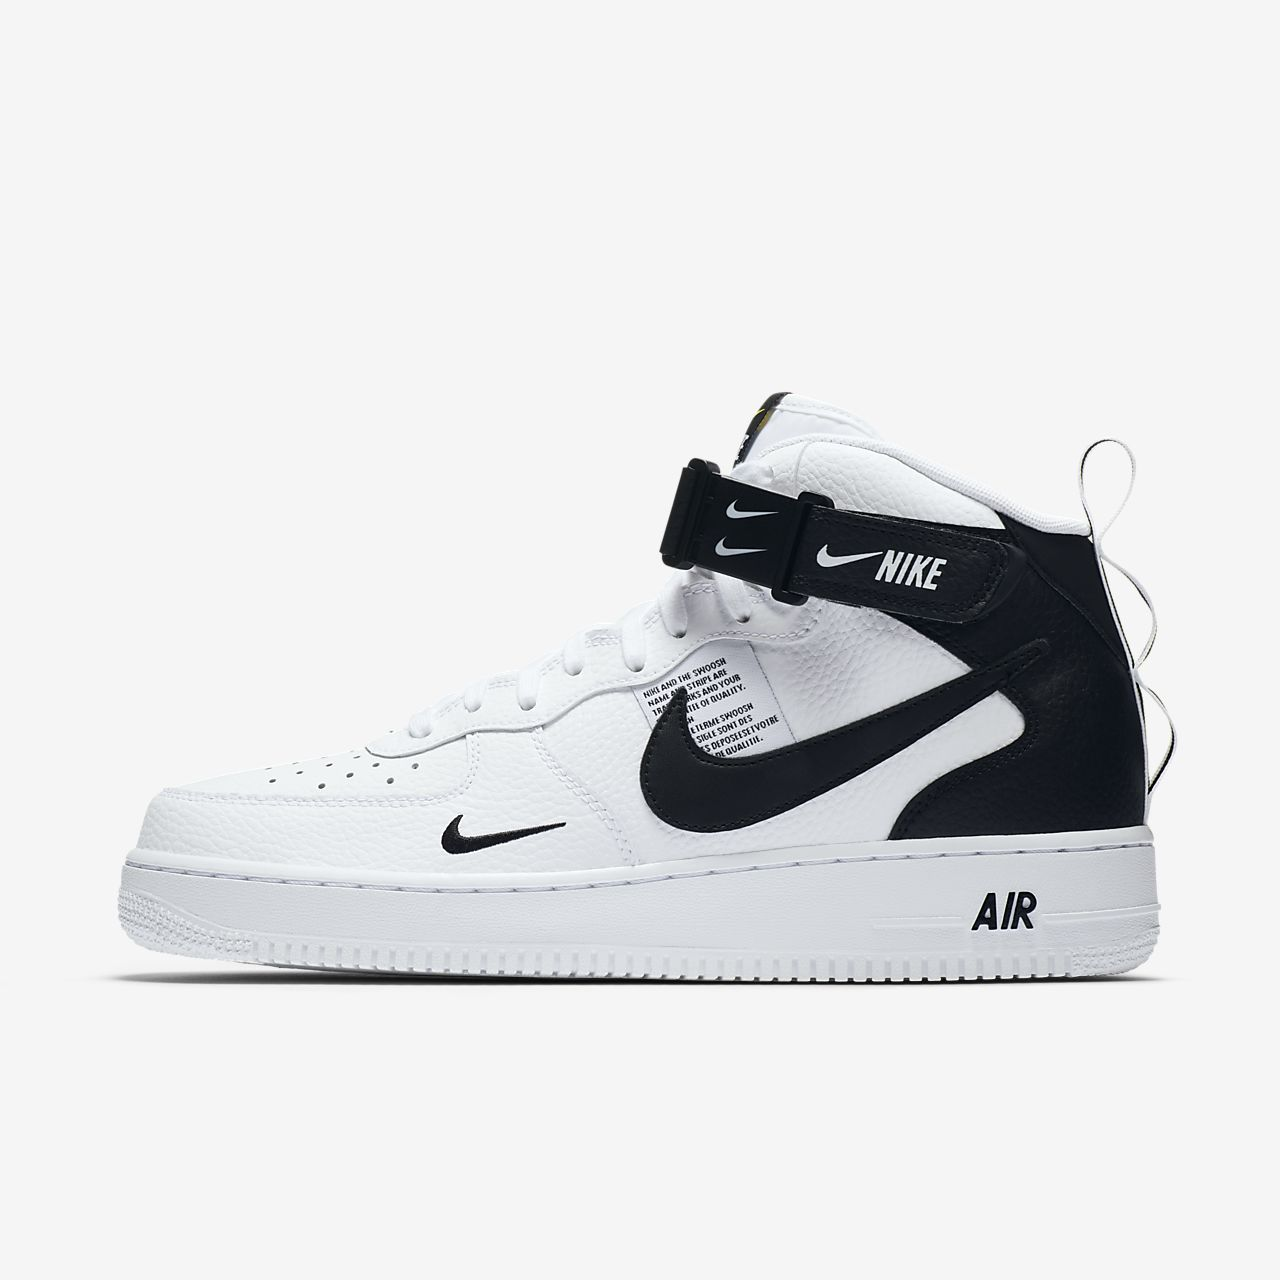 ebay nike air force 1 flyknit low mujeres zapato laces 79fb0